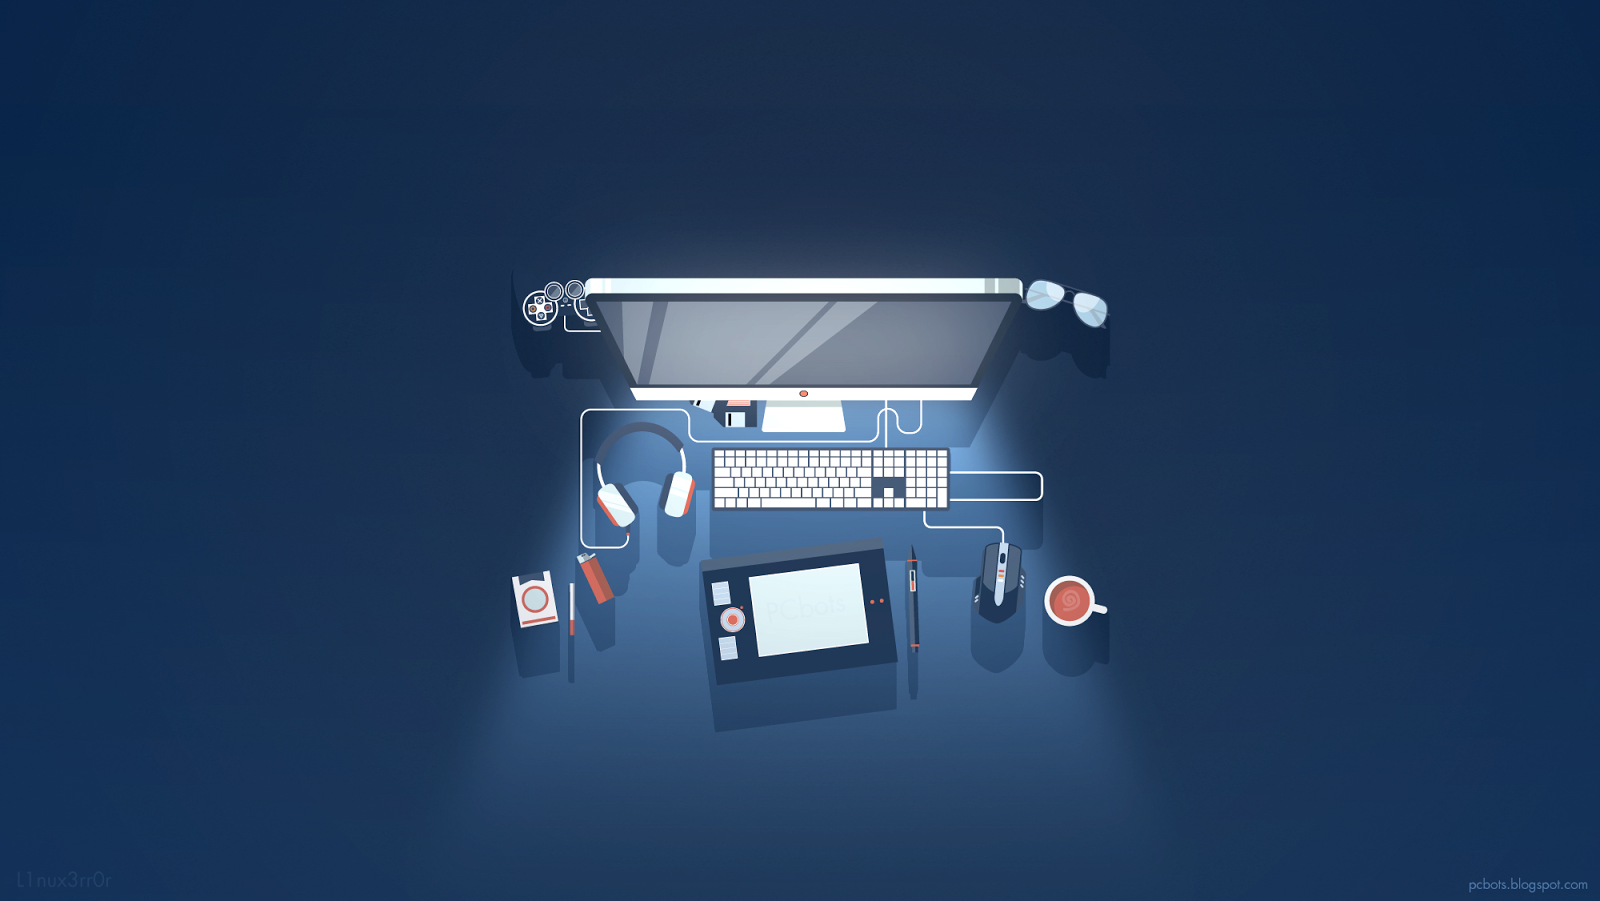 Graphic Designer Wallpaper By PCbots